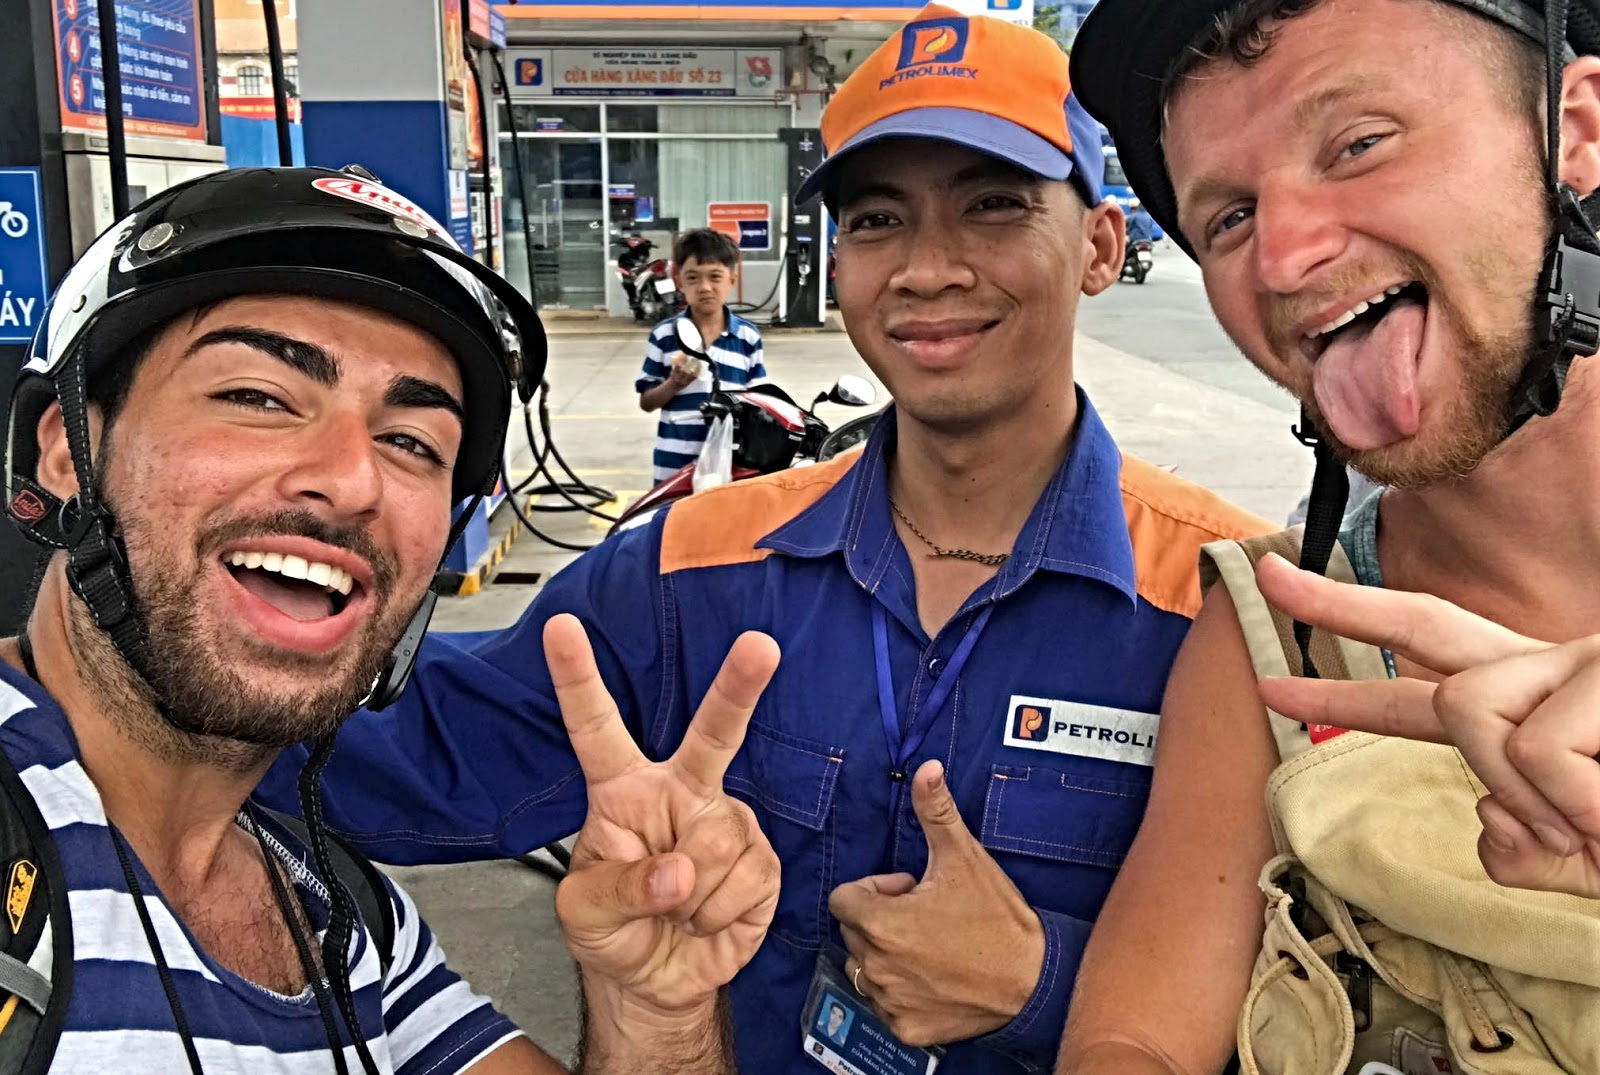 Two tourists taking a photo with employee of a gas station in Southeast Asia